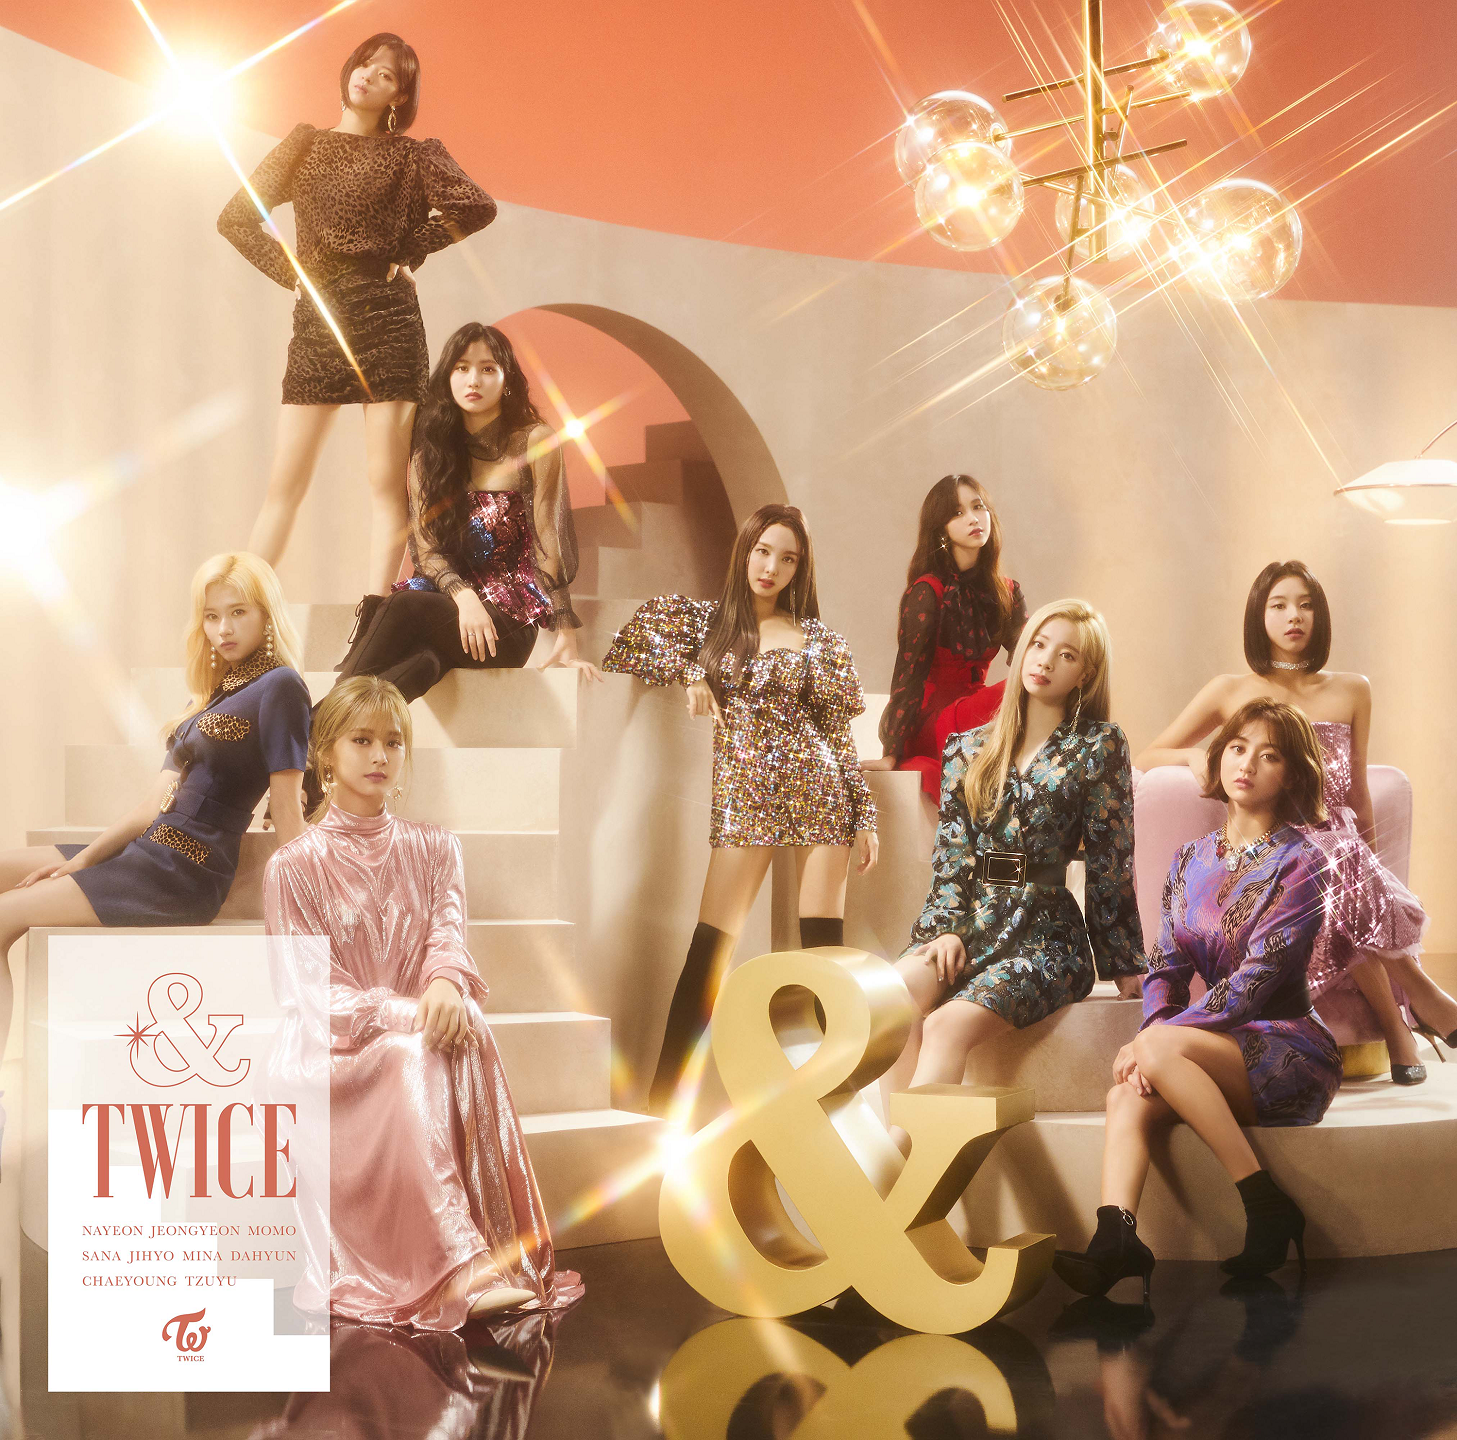 TWICE &TWICE Normal Ed. cover art.png